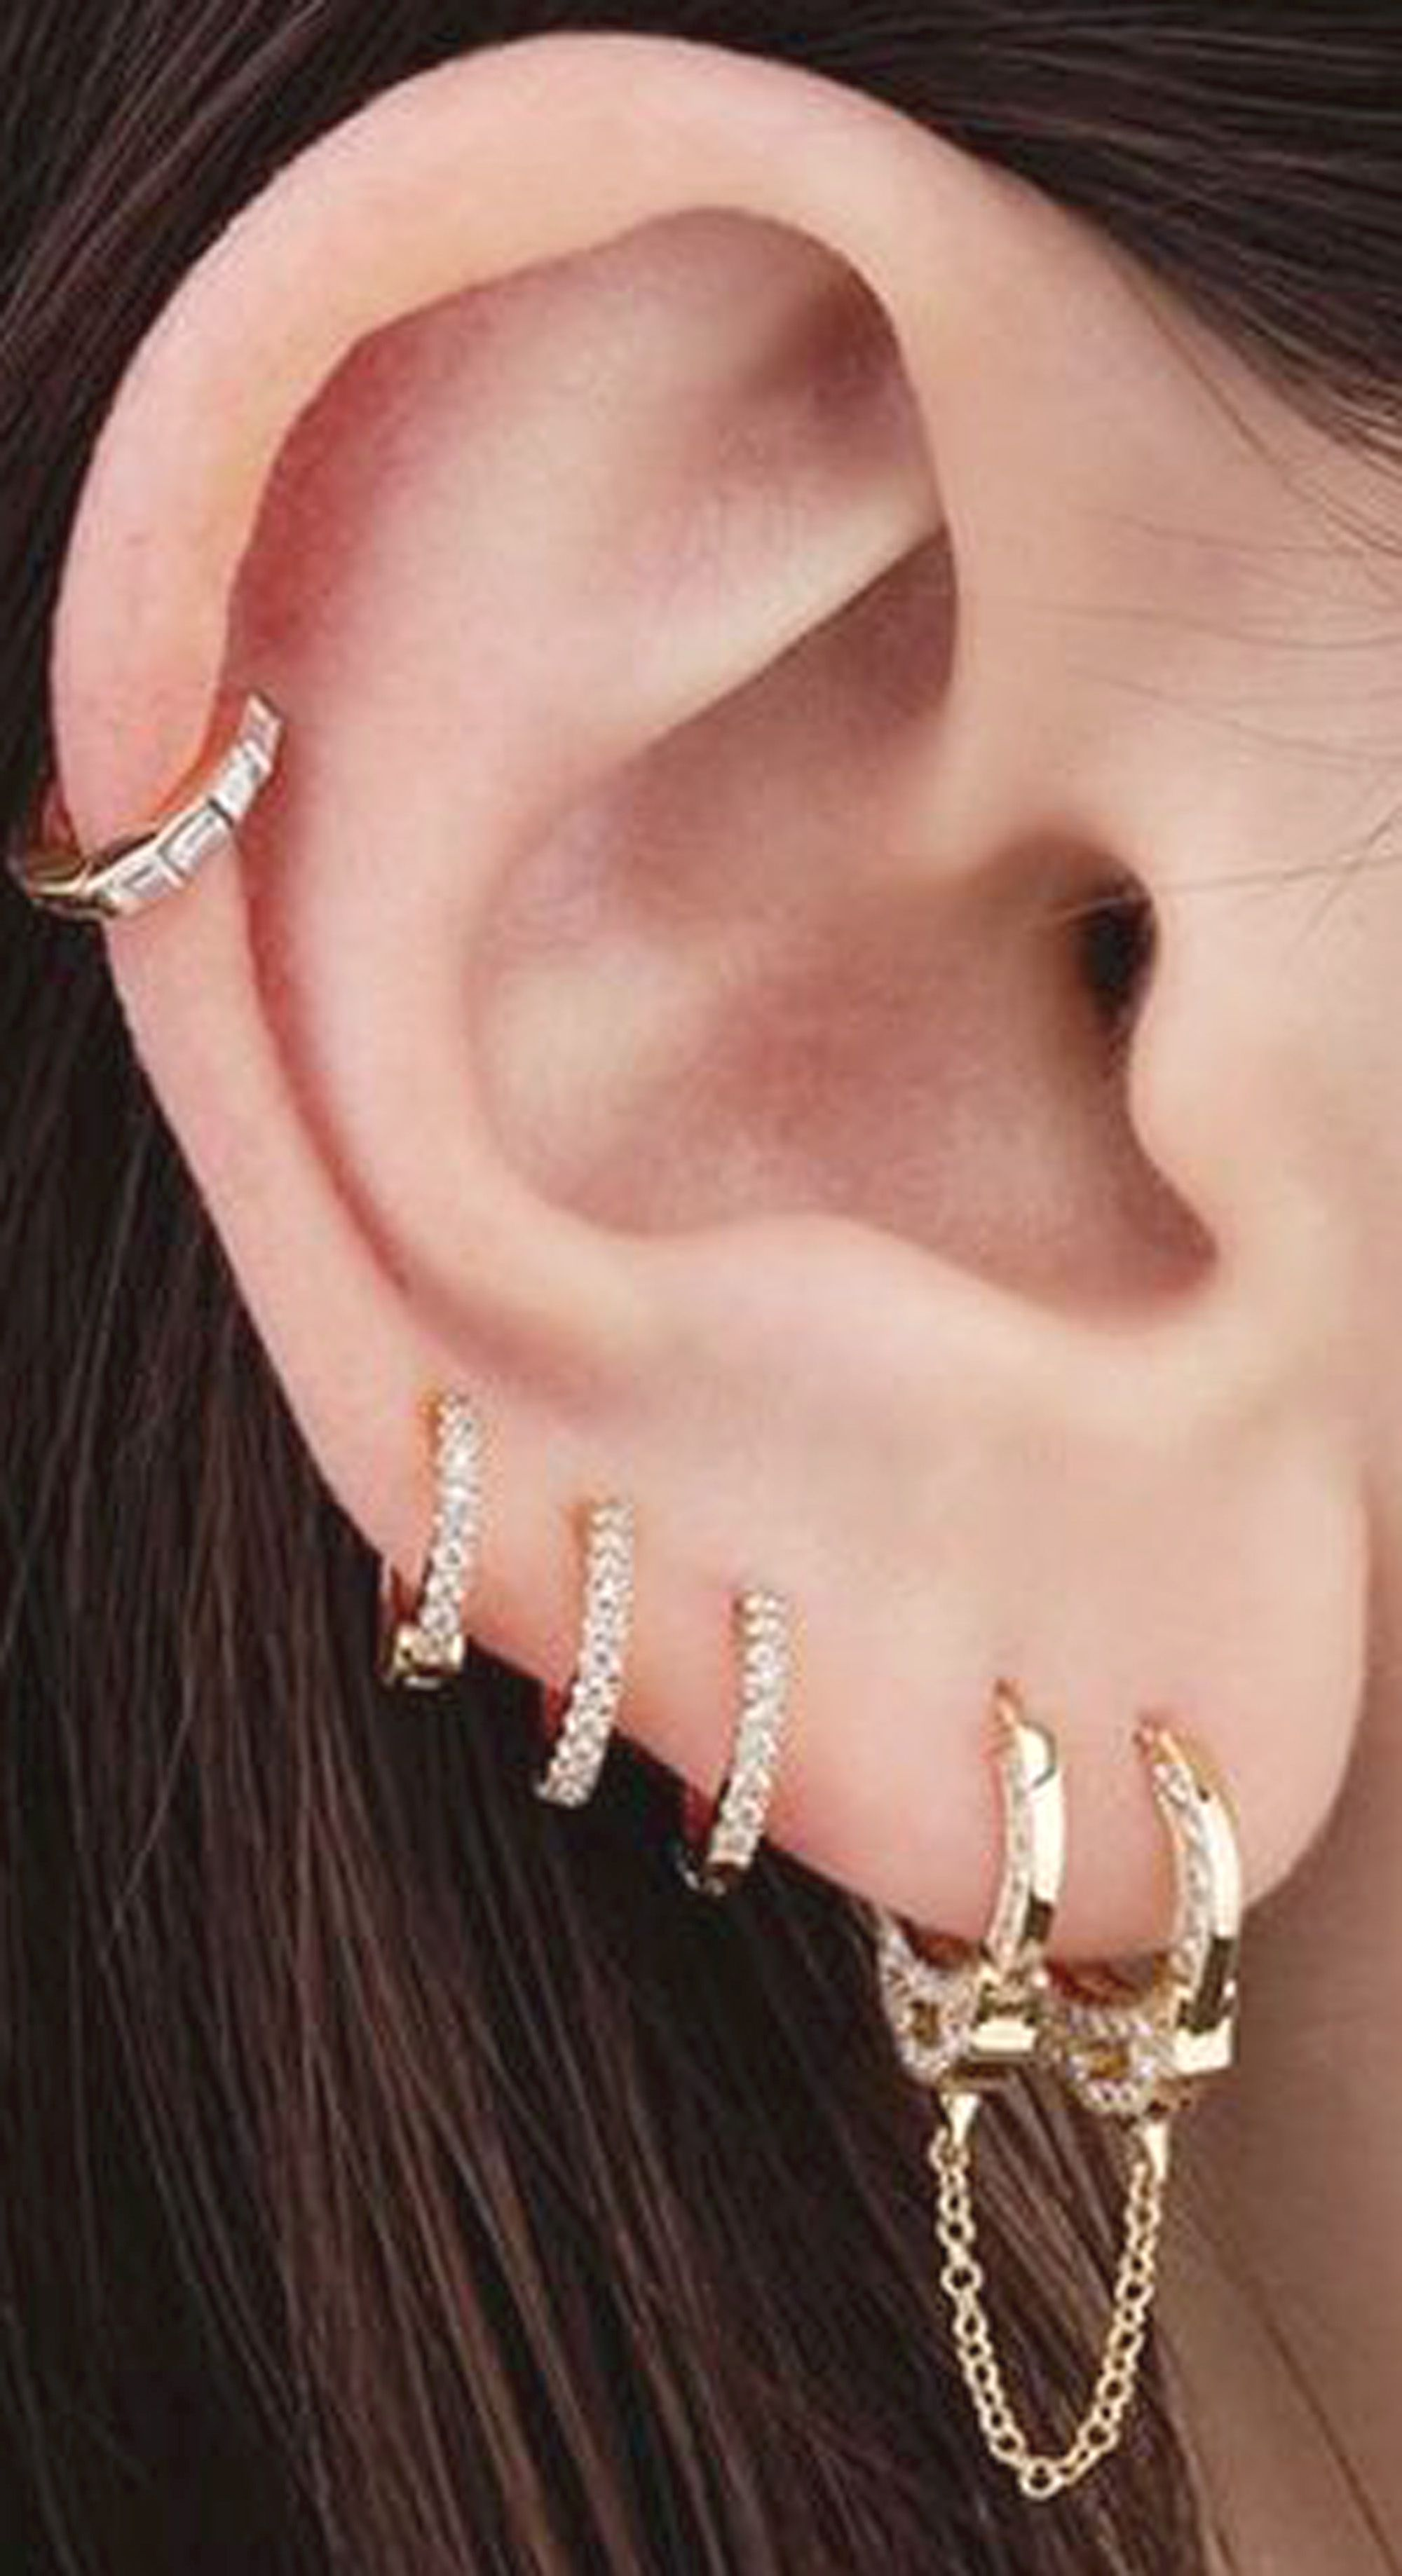 18g nose piercing  Arianna Crystal Nose  Ear Piercing Earring G Ring in Silver